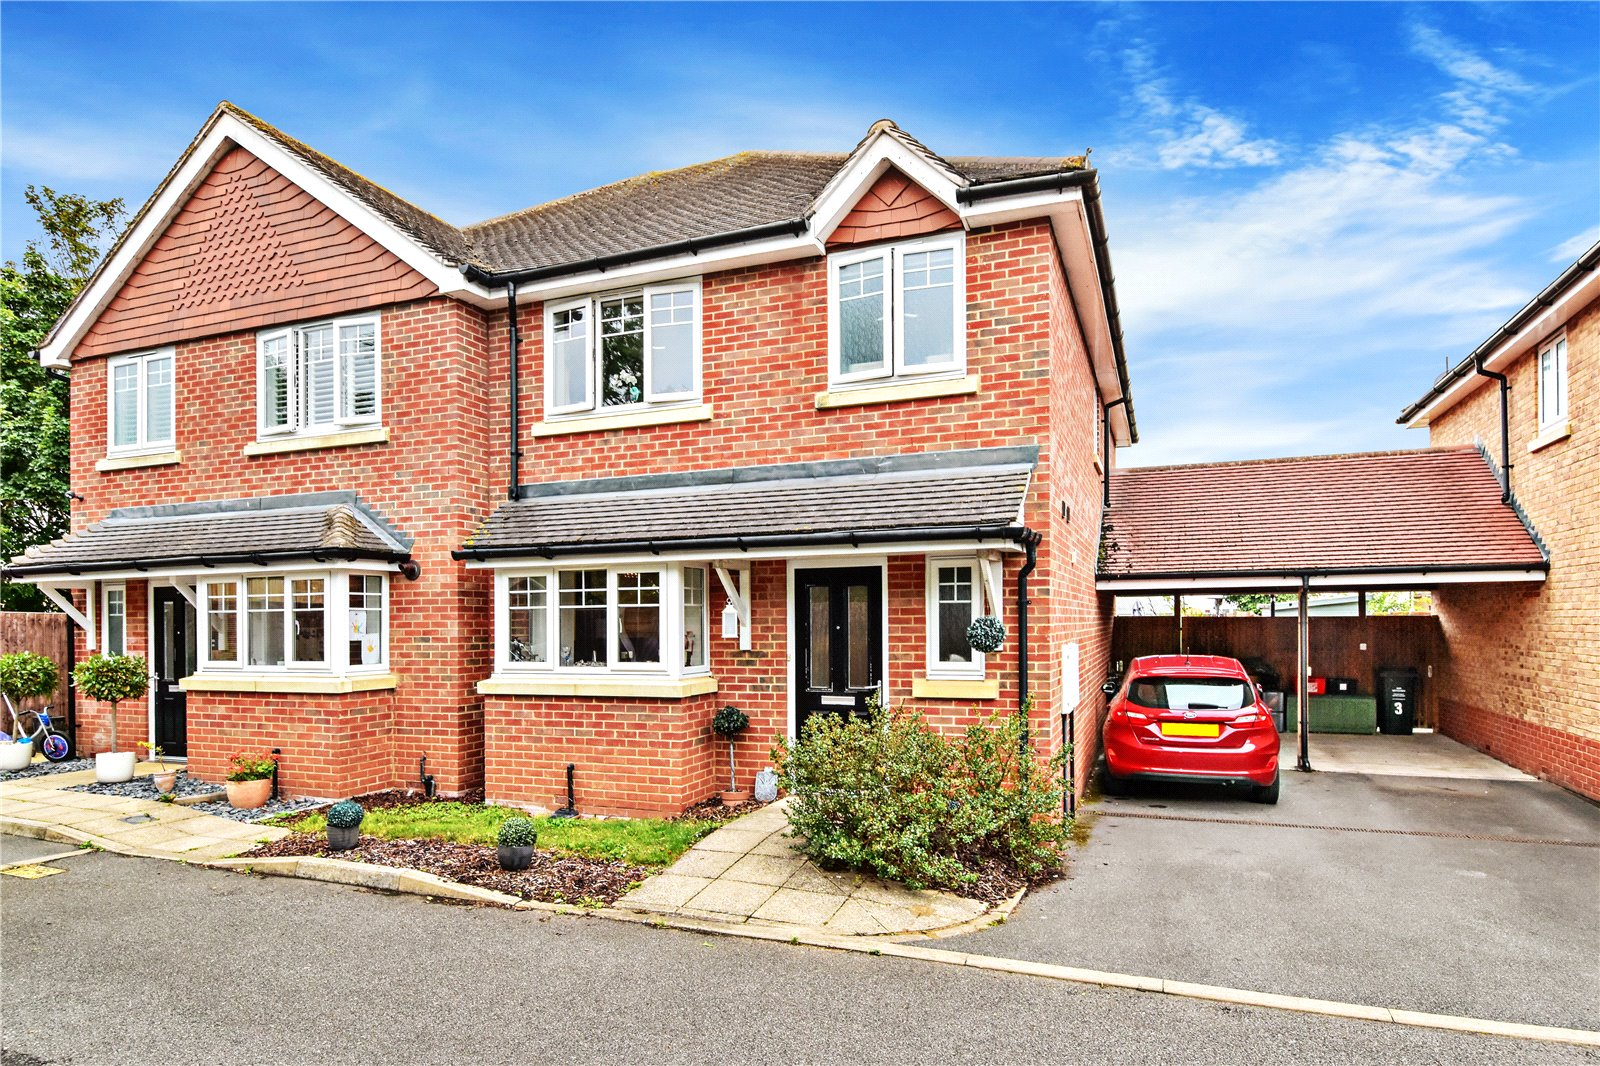 Western Terrace, Havelock Gate, West Dartford, Kent, DA1